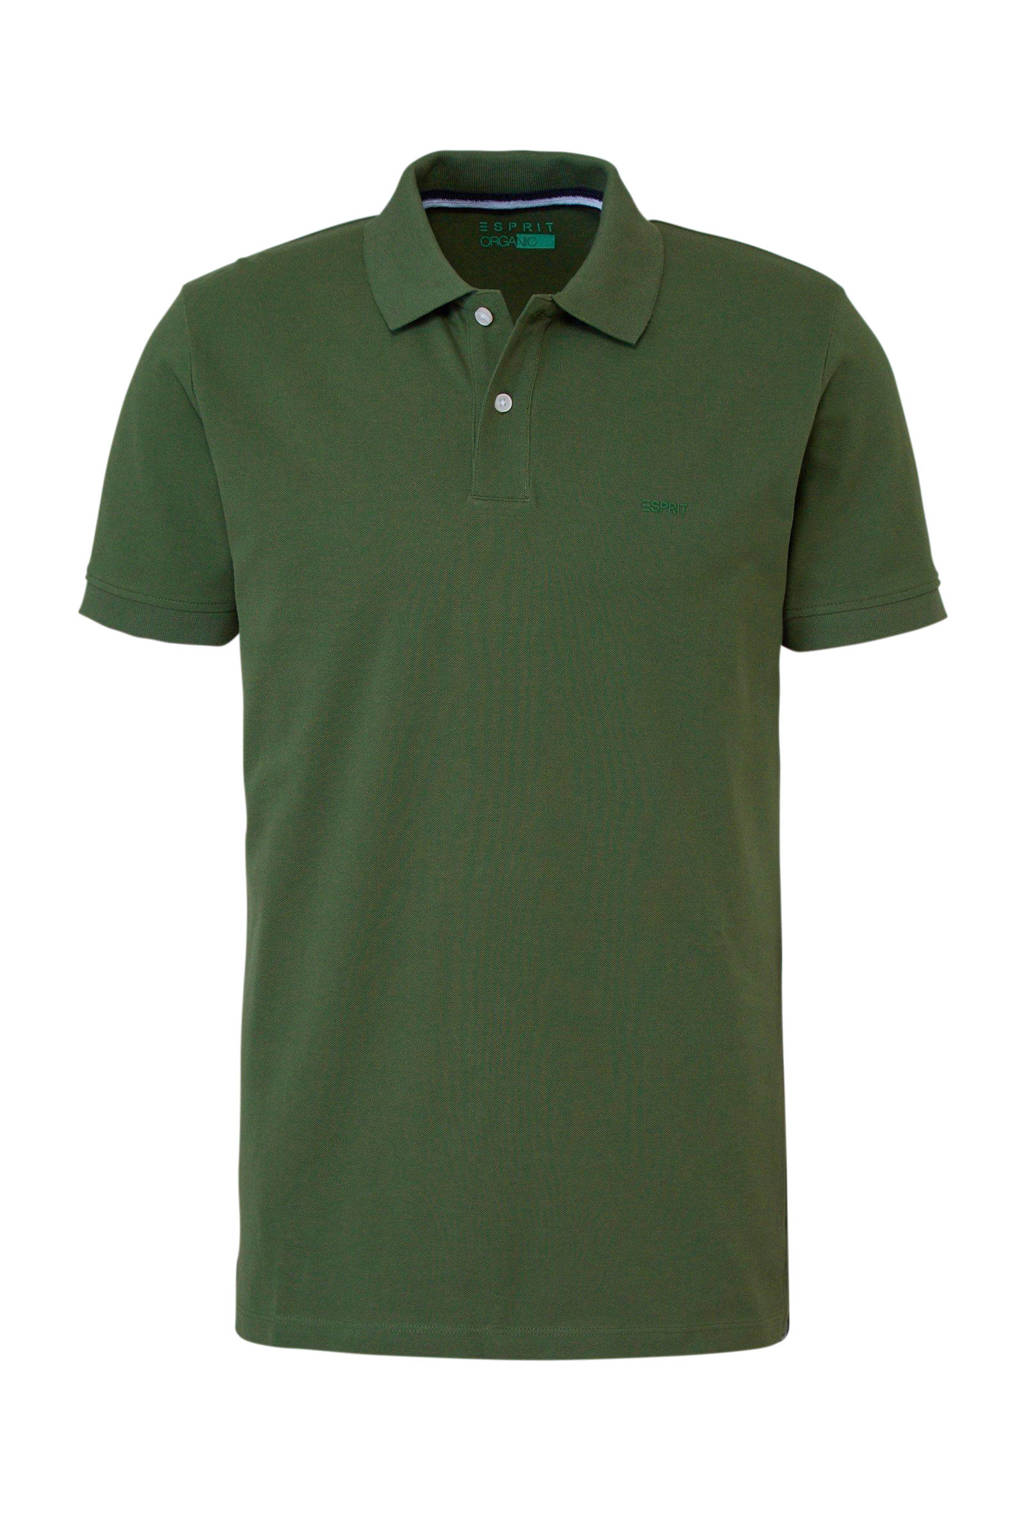 ESPRIT Men Casual polo, Groen